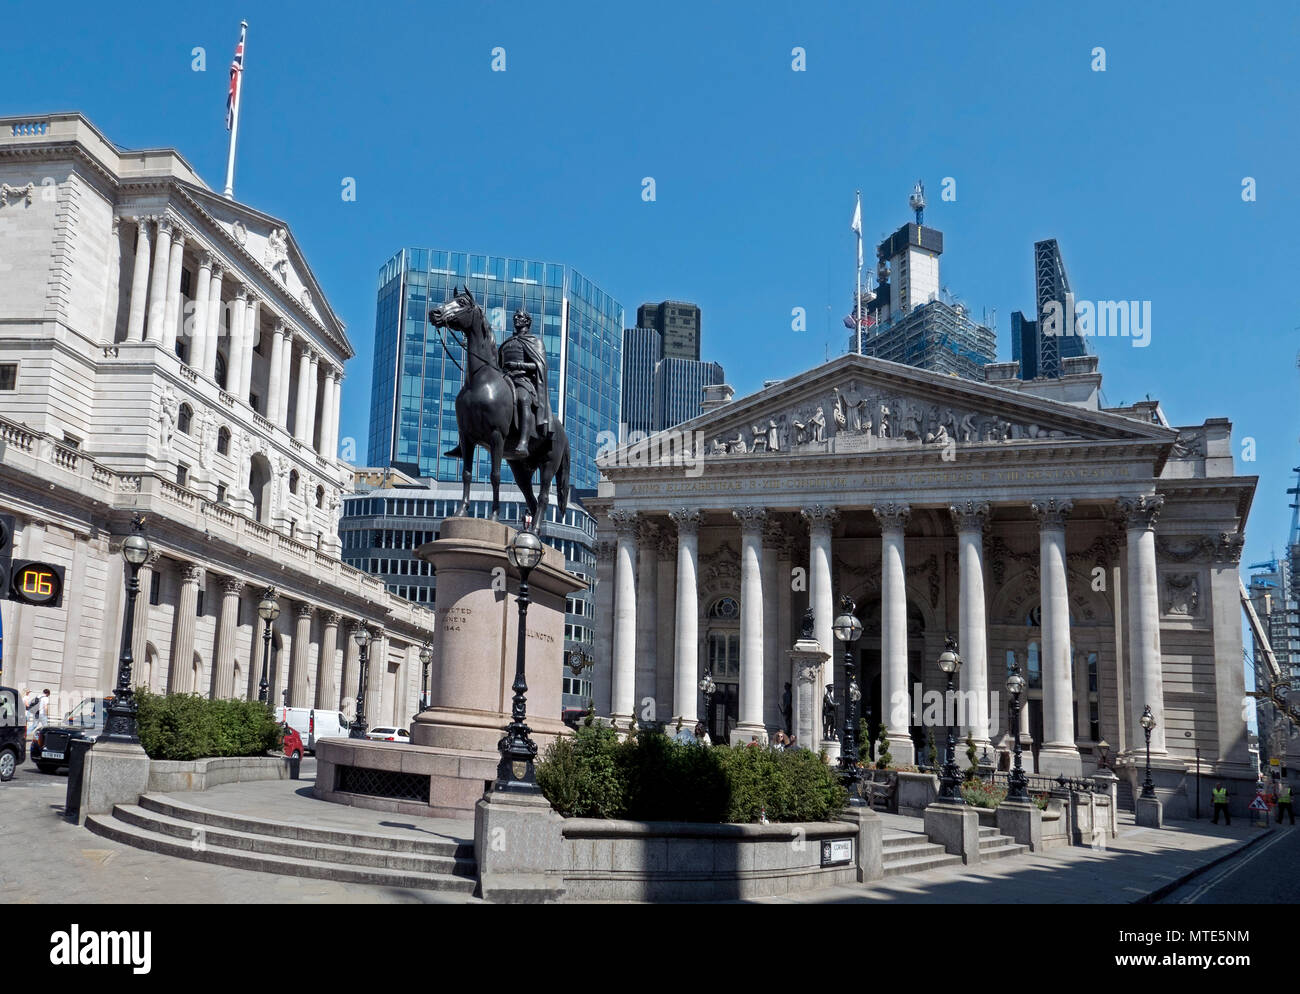 View from Bank Junction of Bank of England, Duke of Wellington Statue & Royal Exchange under clear blue summer sky - Stock Image